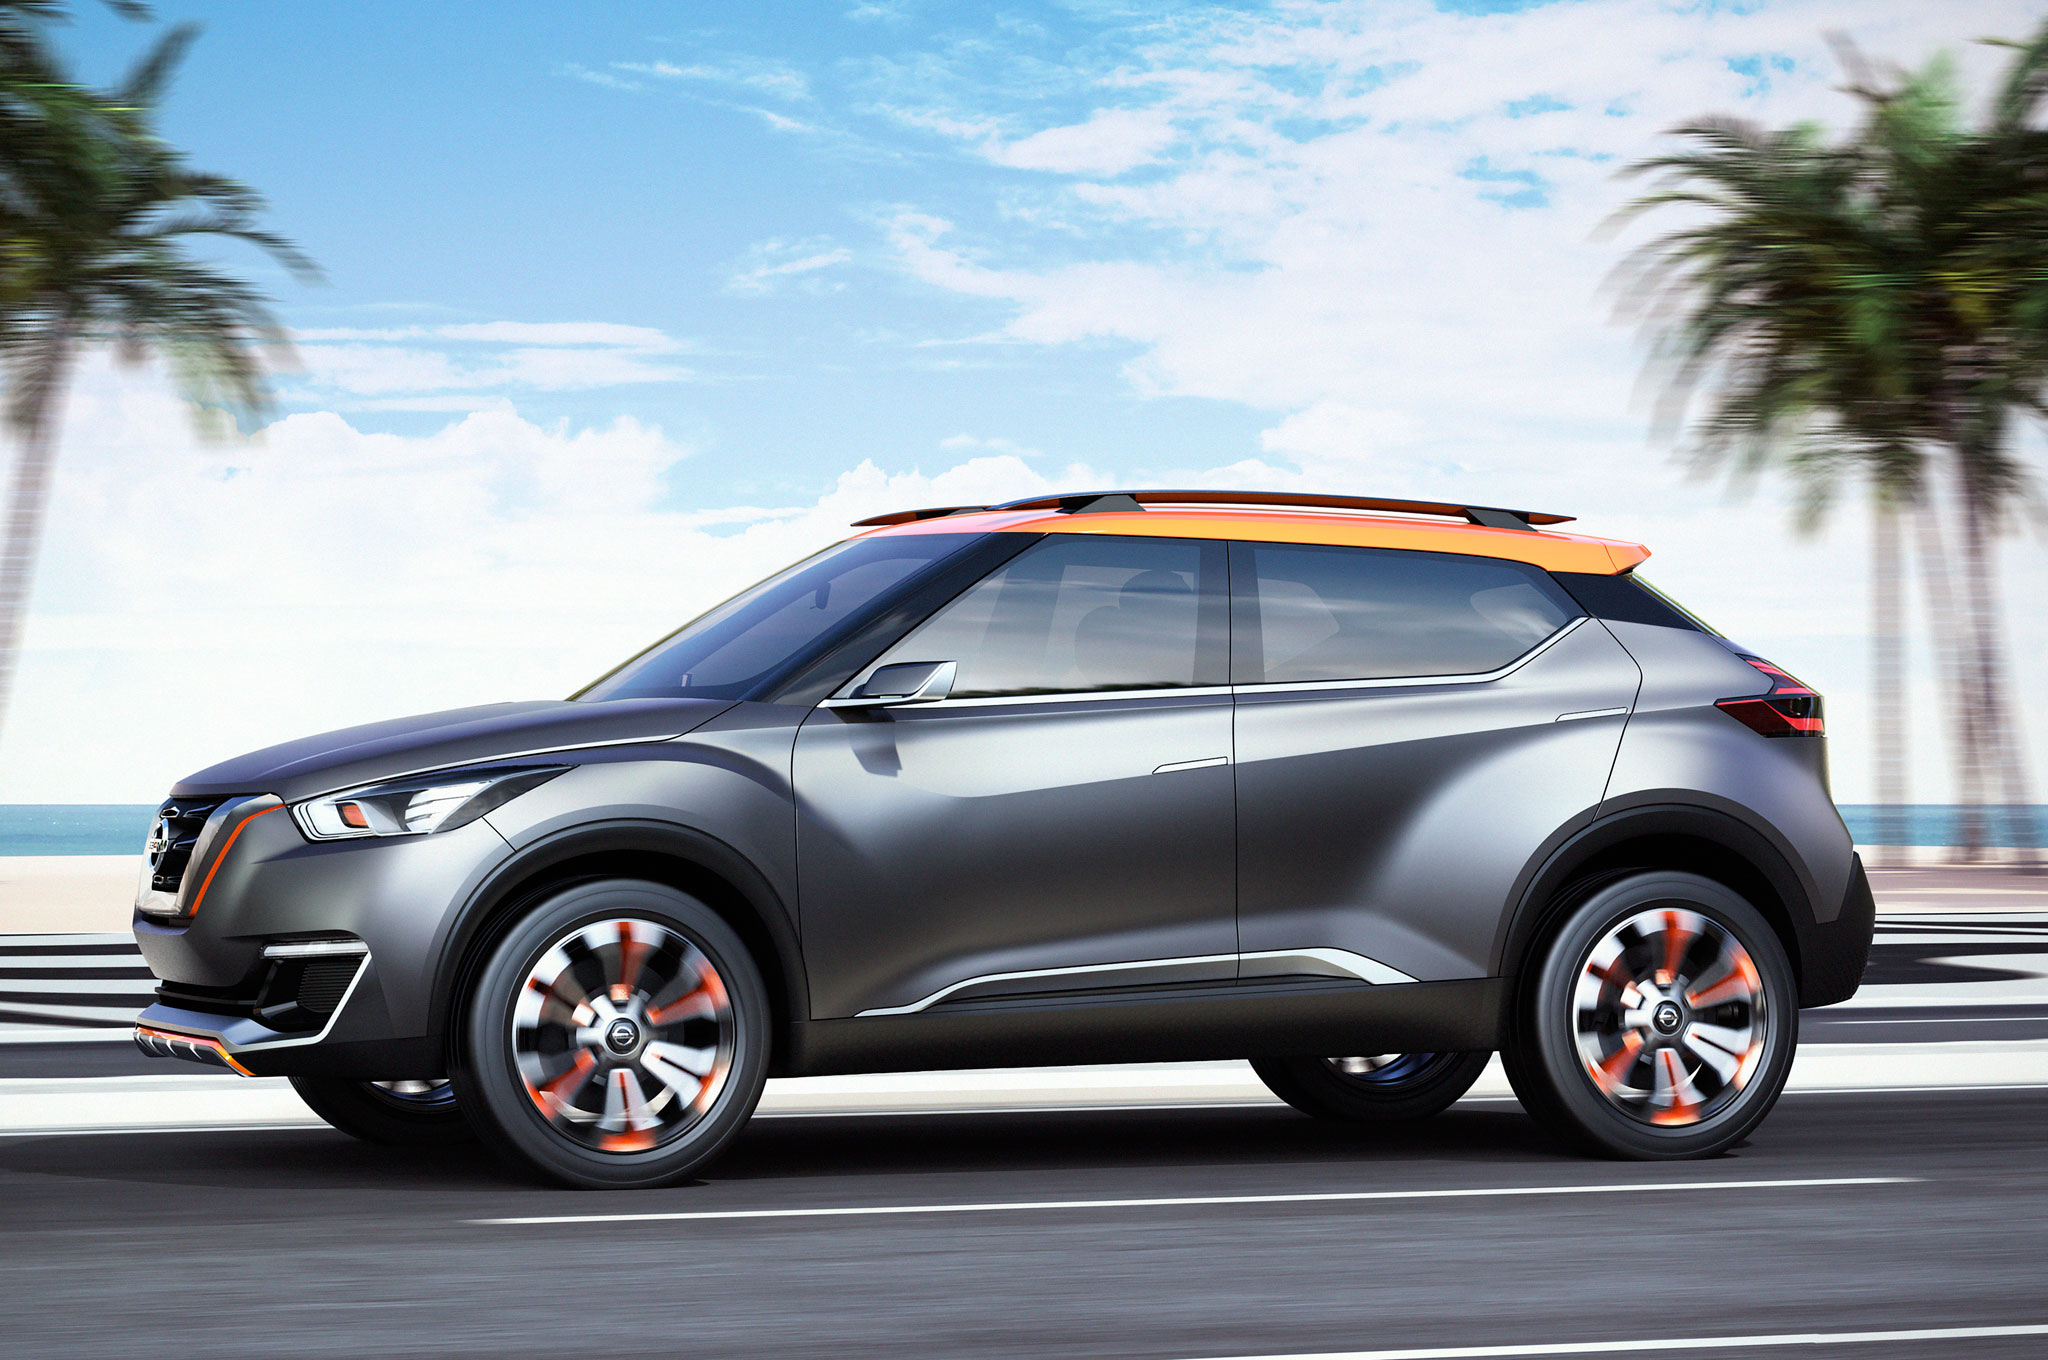 Nissan Kicks Suv Concept Debuts In Sao Paulo Mini Cooper Fuse Box Problems Show More